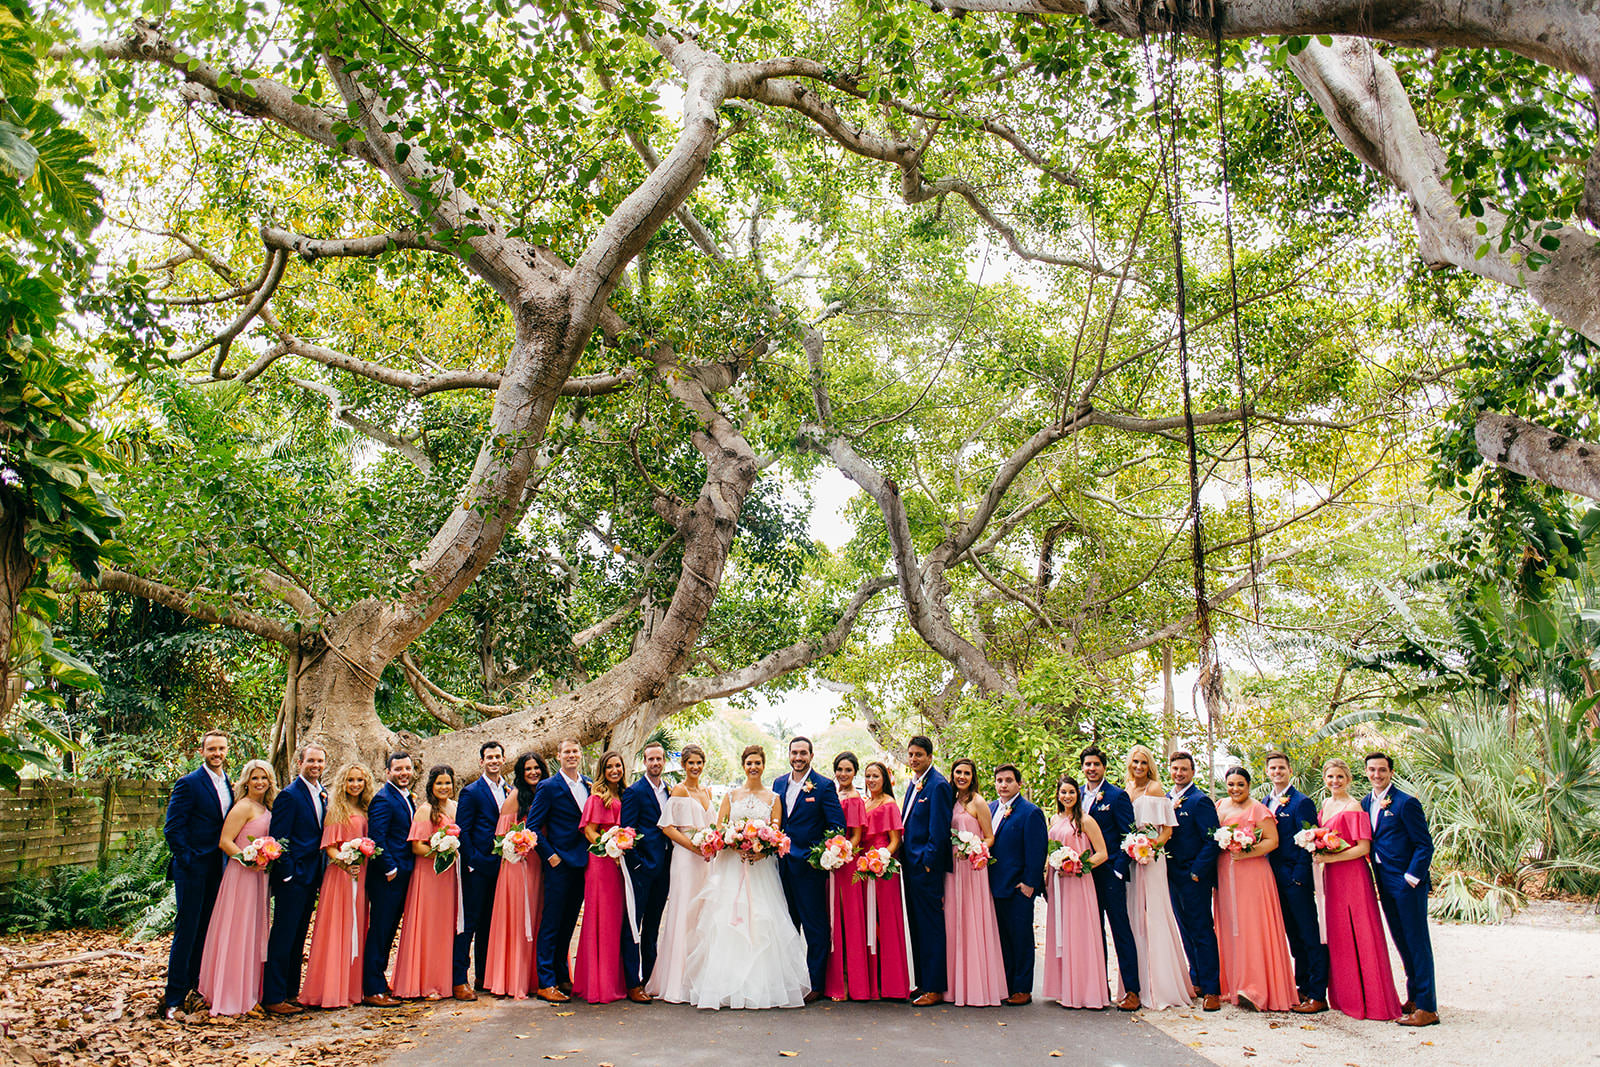 Tropical Colorful Wedding Party, Bridesmaids in Pink and Coral Dresses, Groomsmen in Navy Blue Suits